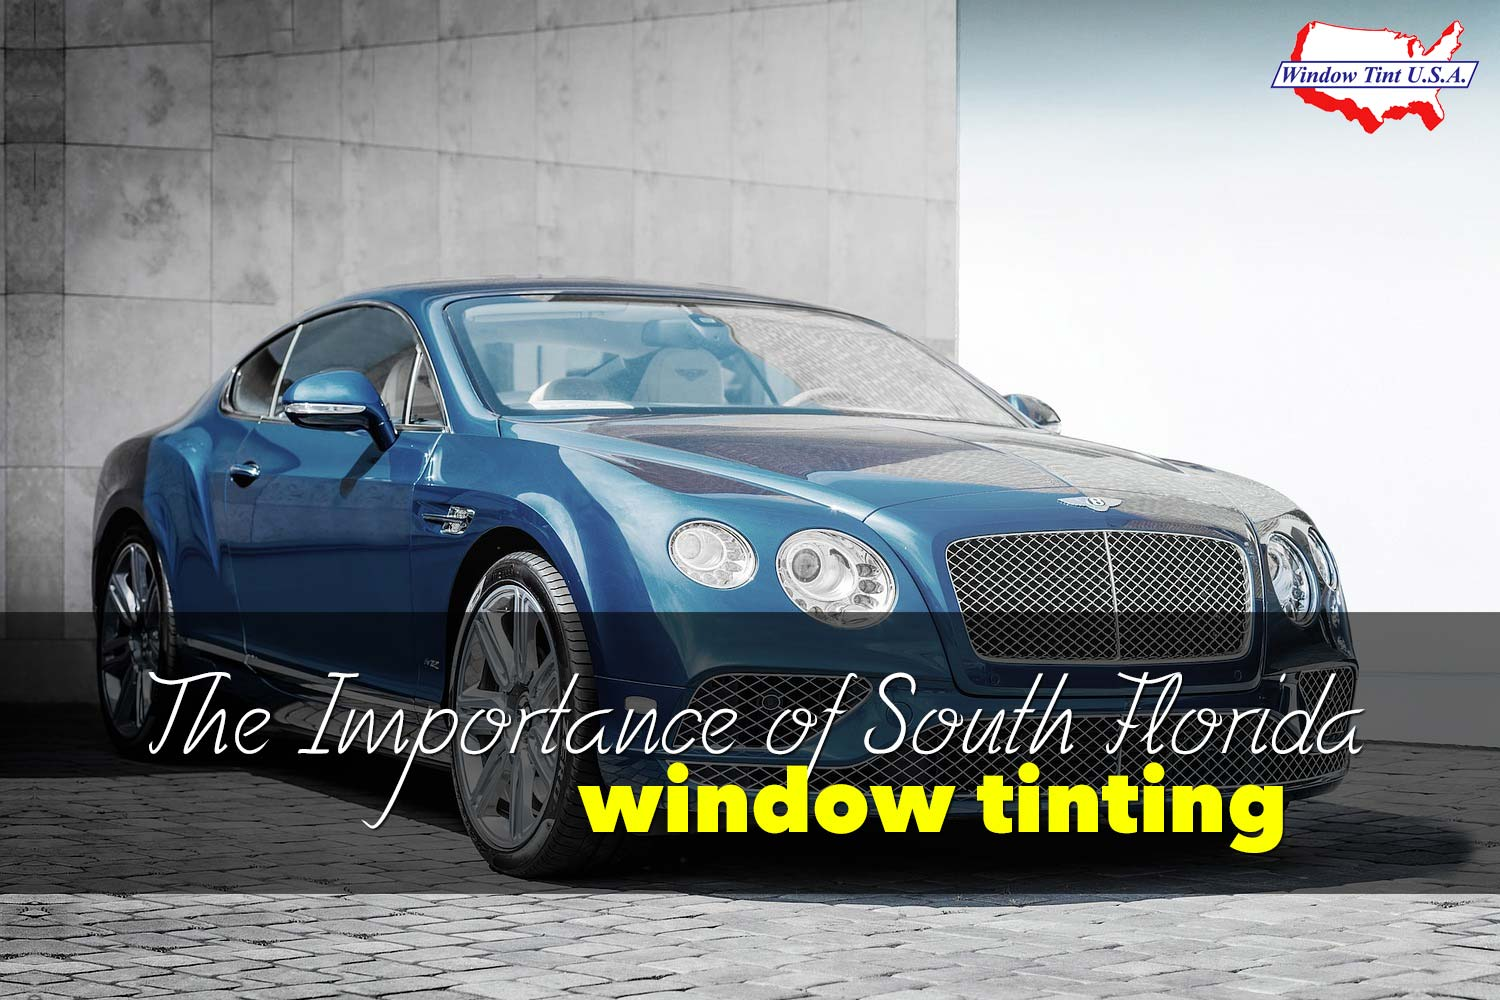 South Florida window tinting